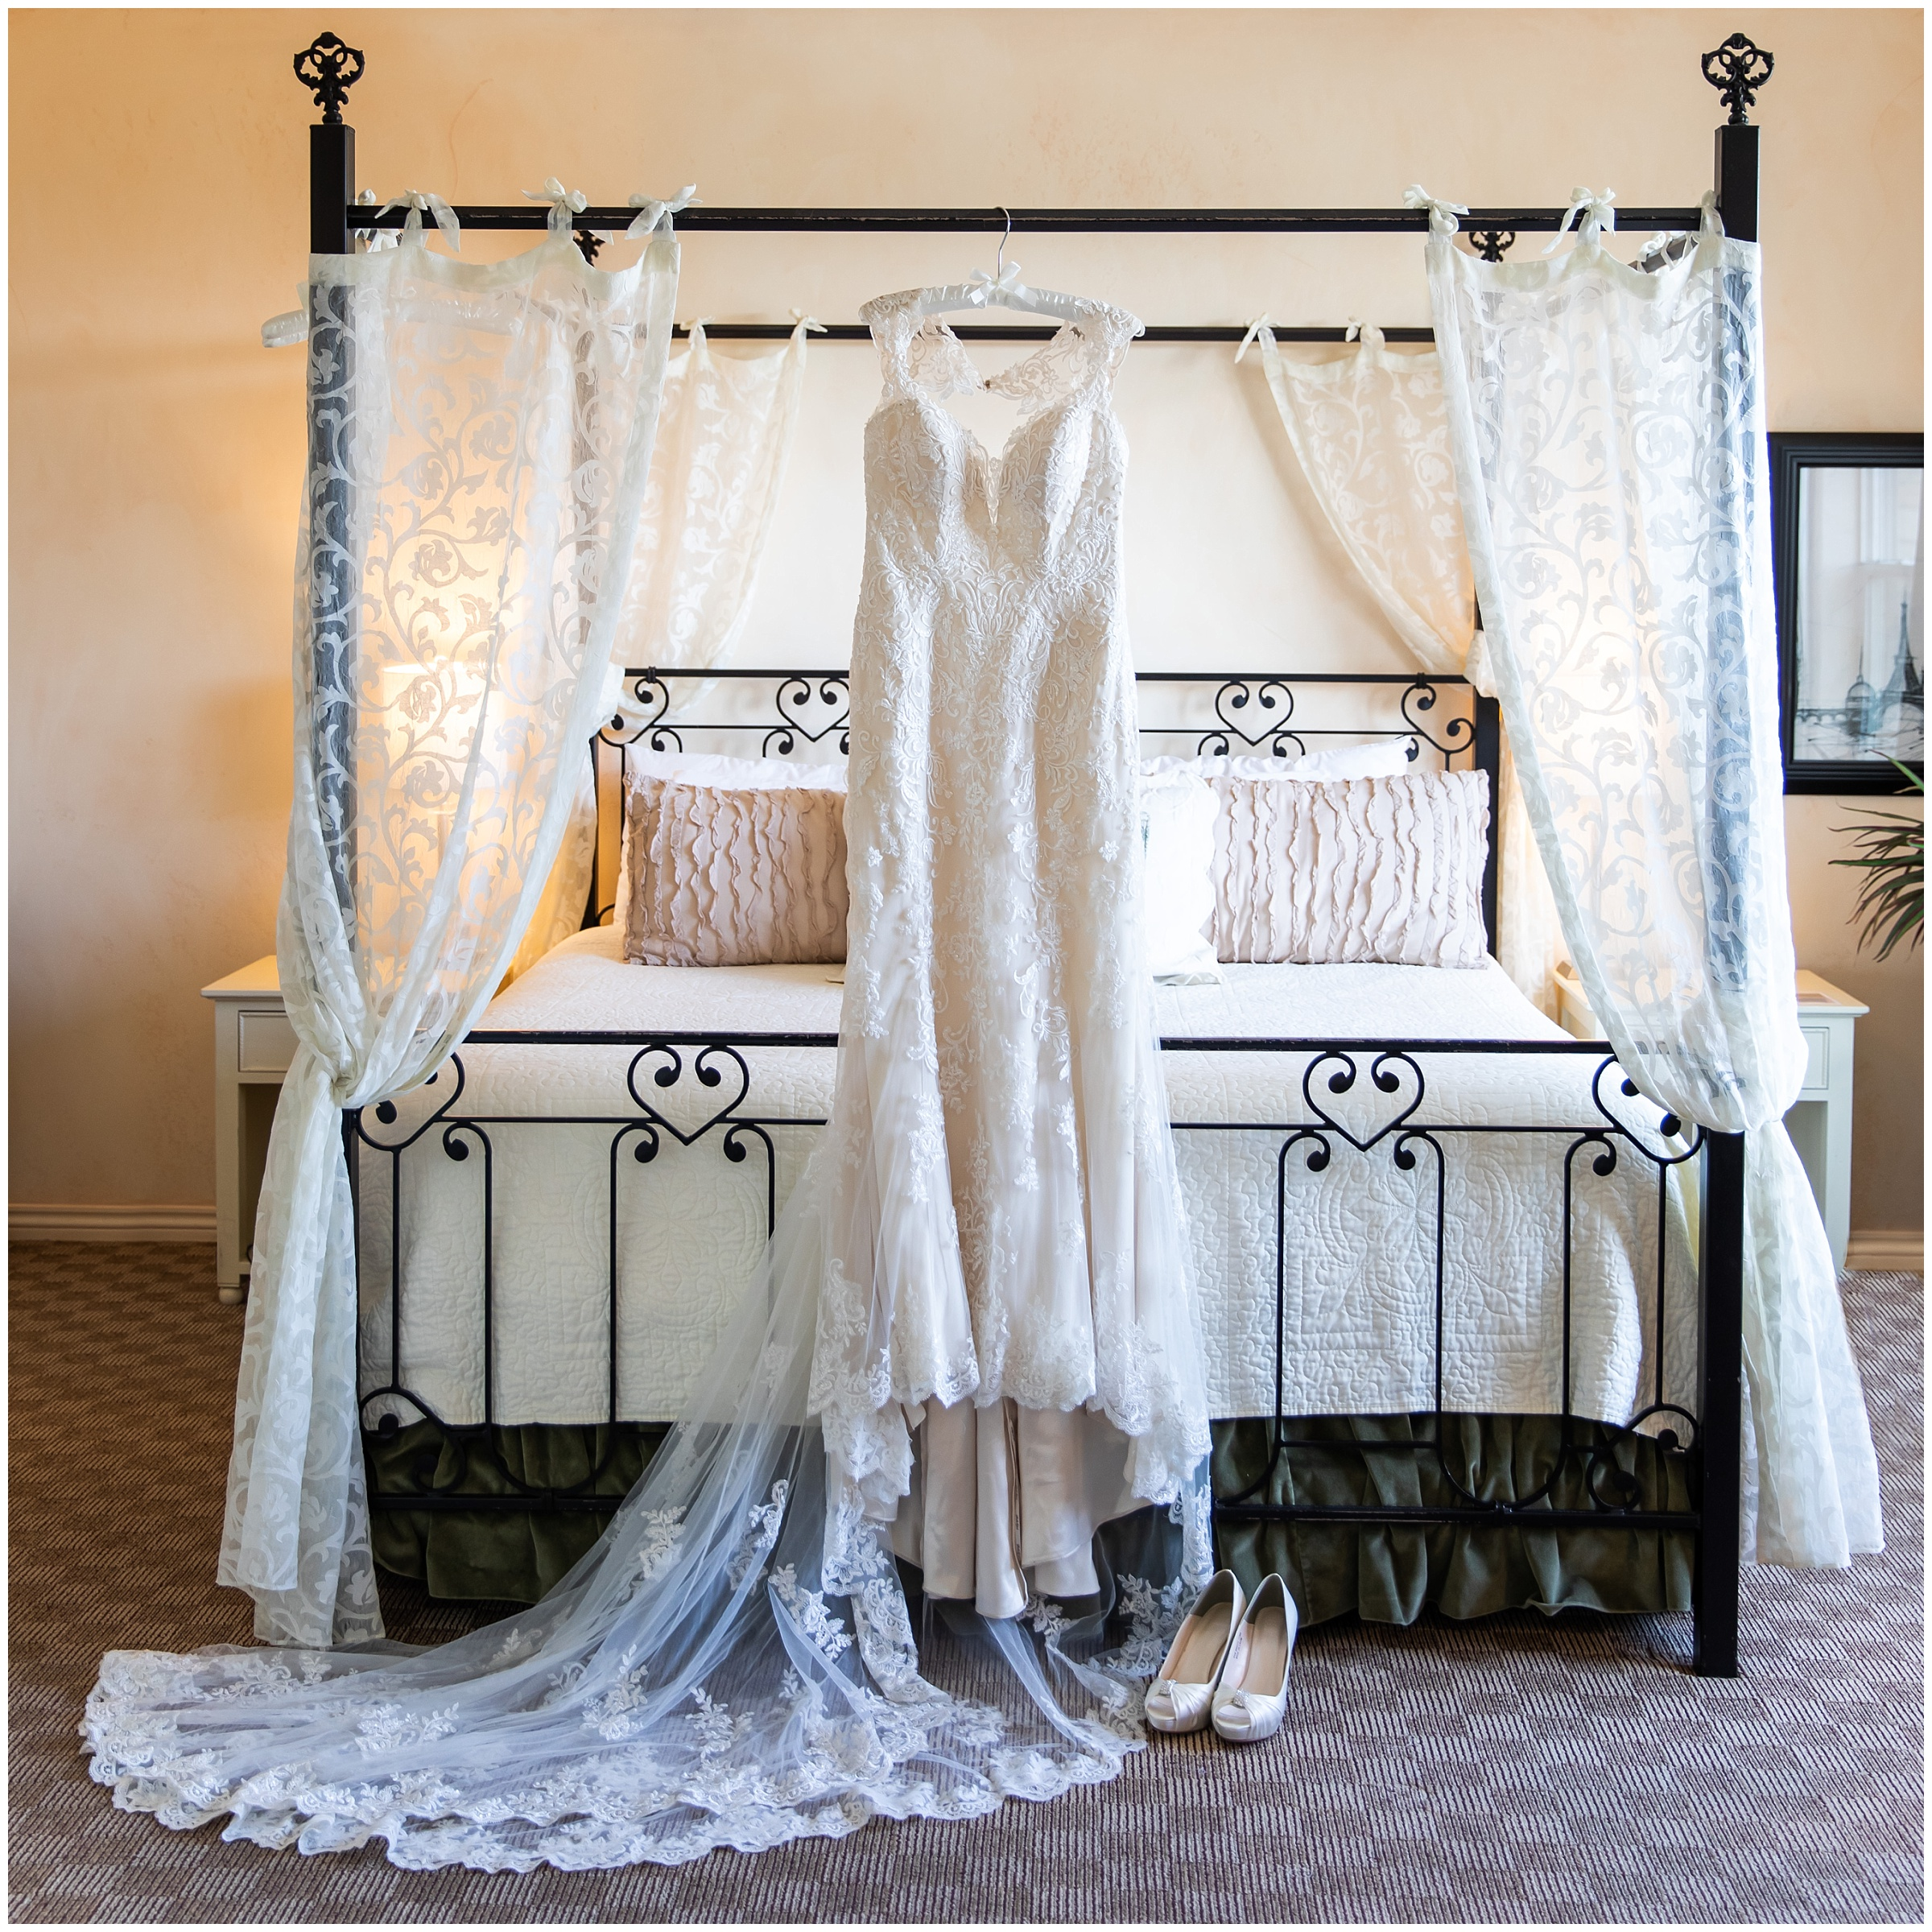 The bed in the bridal suite lends itself beautifully to display a wedding dress.